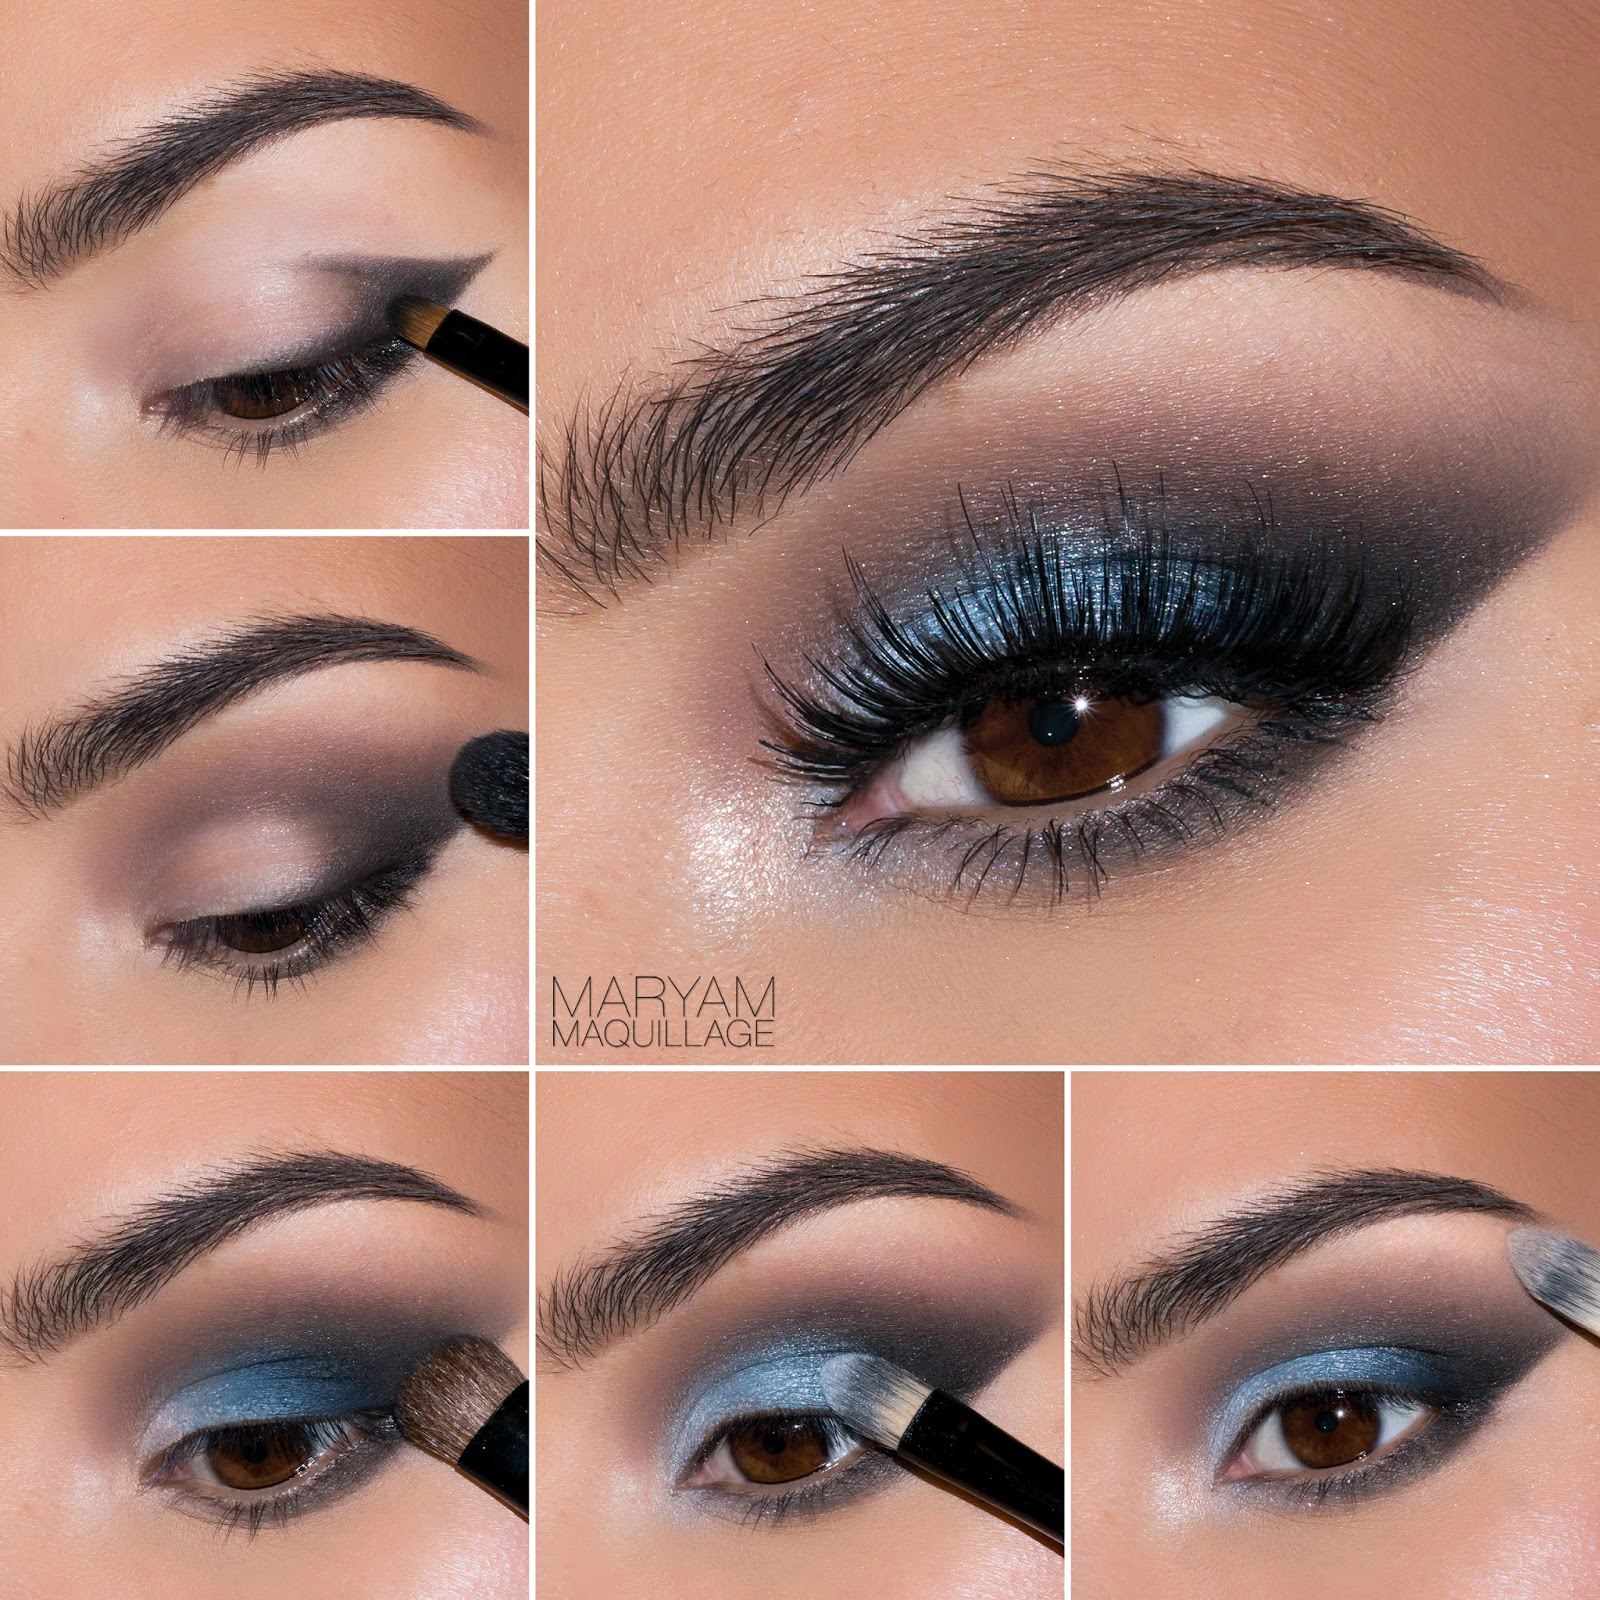 maryam maquillage winter makeup amp fashion the snow queen